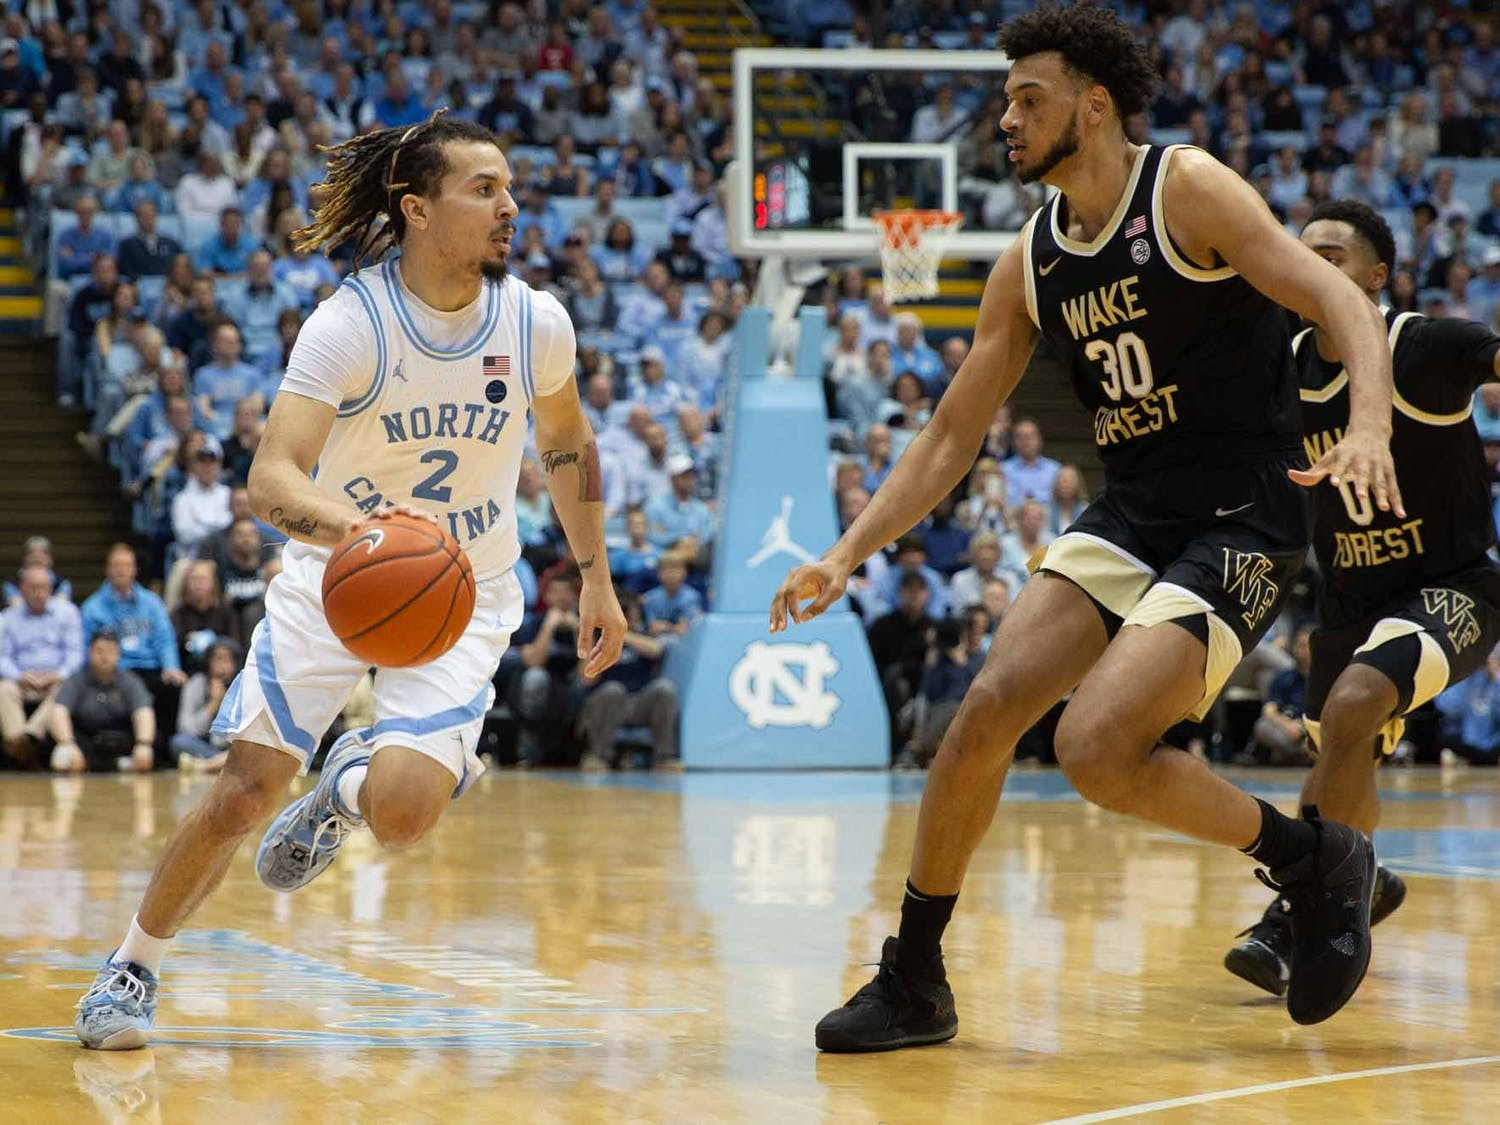 First-year guard Cole Anthony (2) runs down the court as Wake Forest junior center Olivier Sarr (30) tries to block him during a game in the Smith Center on Tuesday, March 3, 2020. The Tar Heels won 93-83 against the Demon Deacons during senior night.